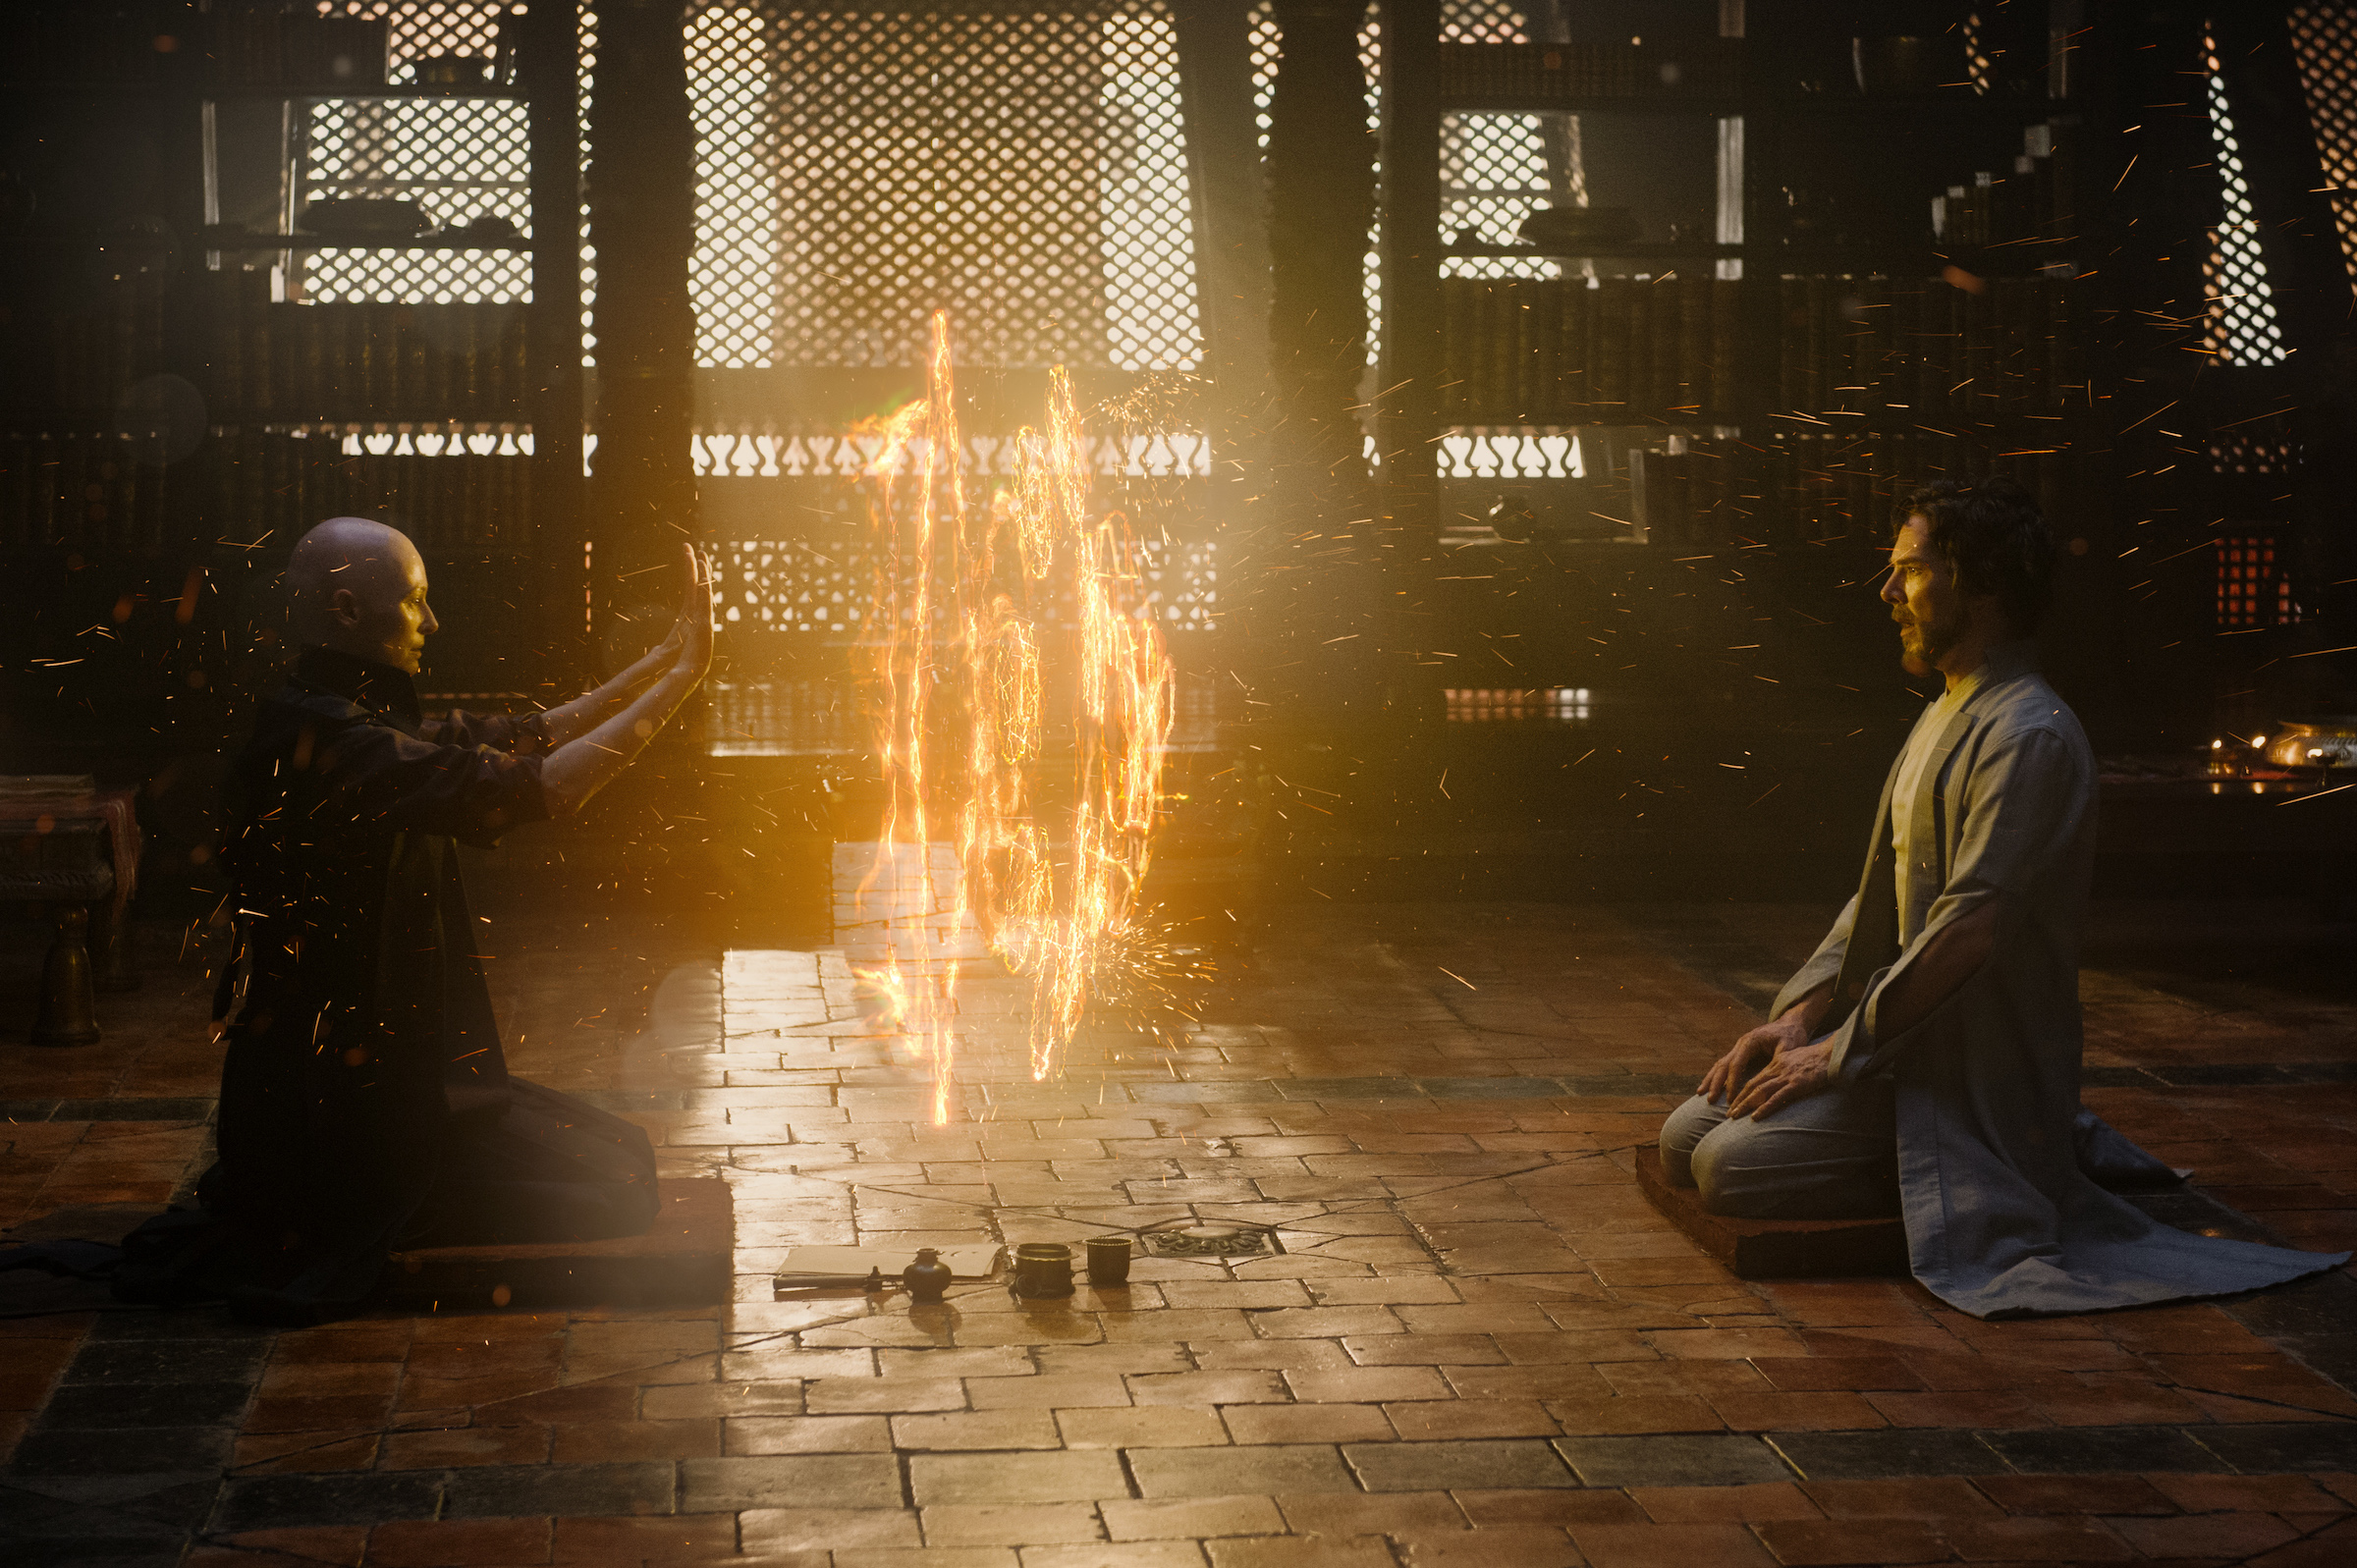 mysterious-pictures-of-doctor-strange-movie-15